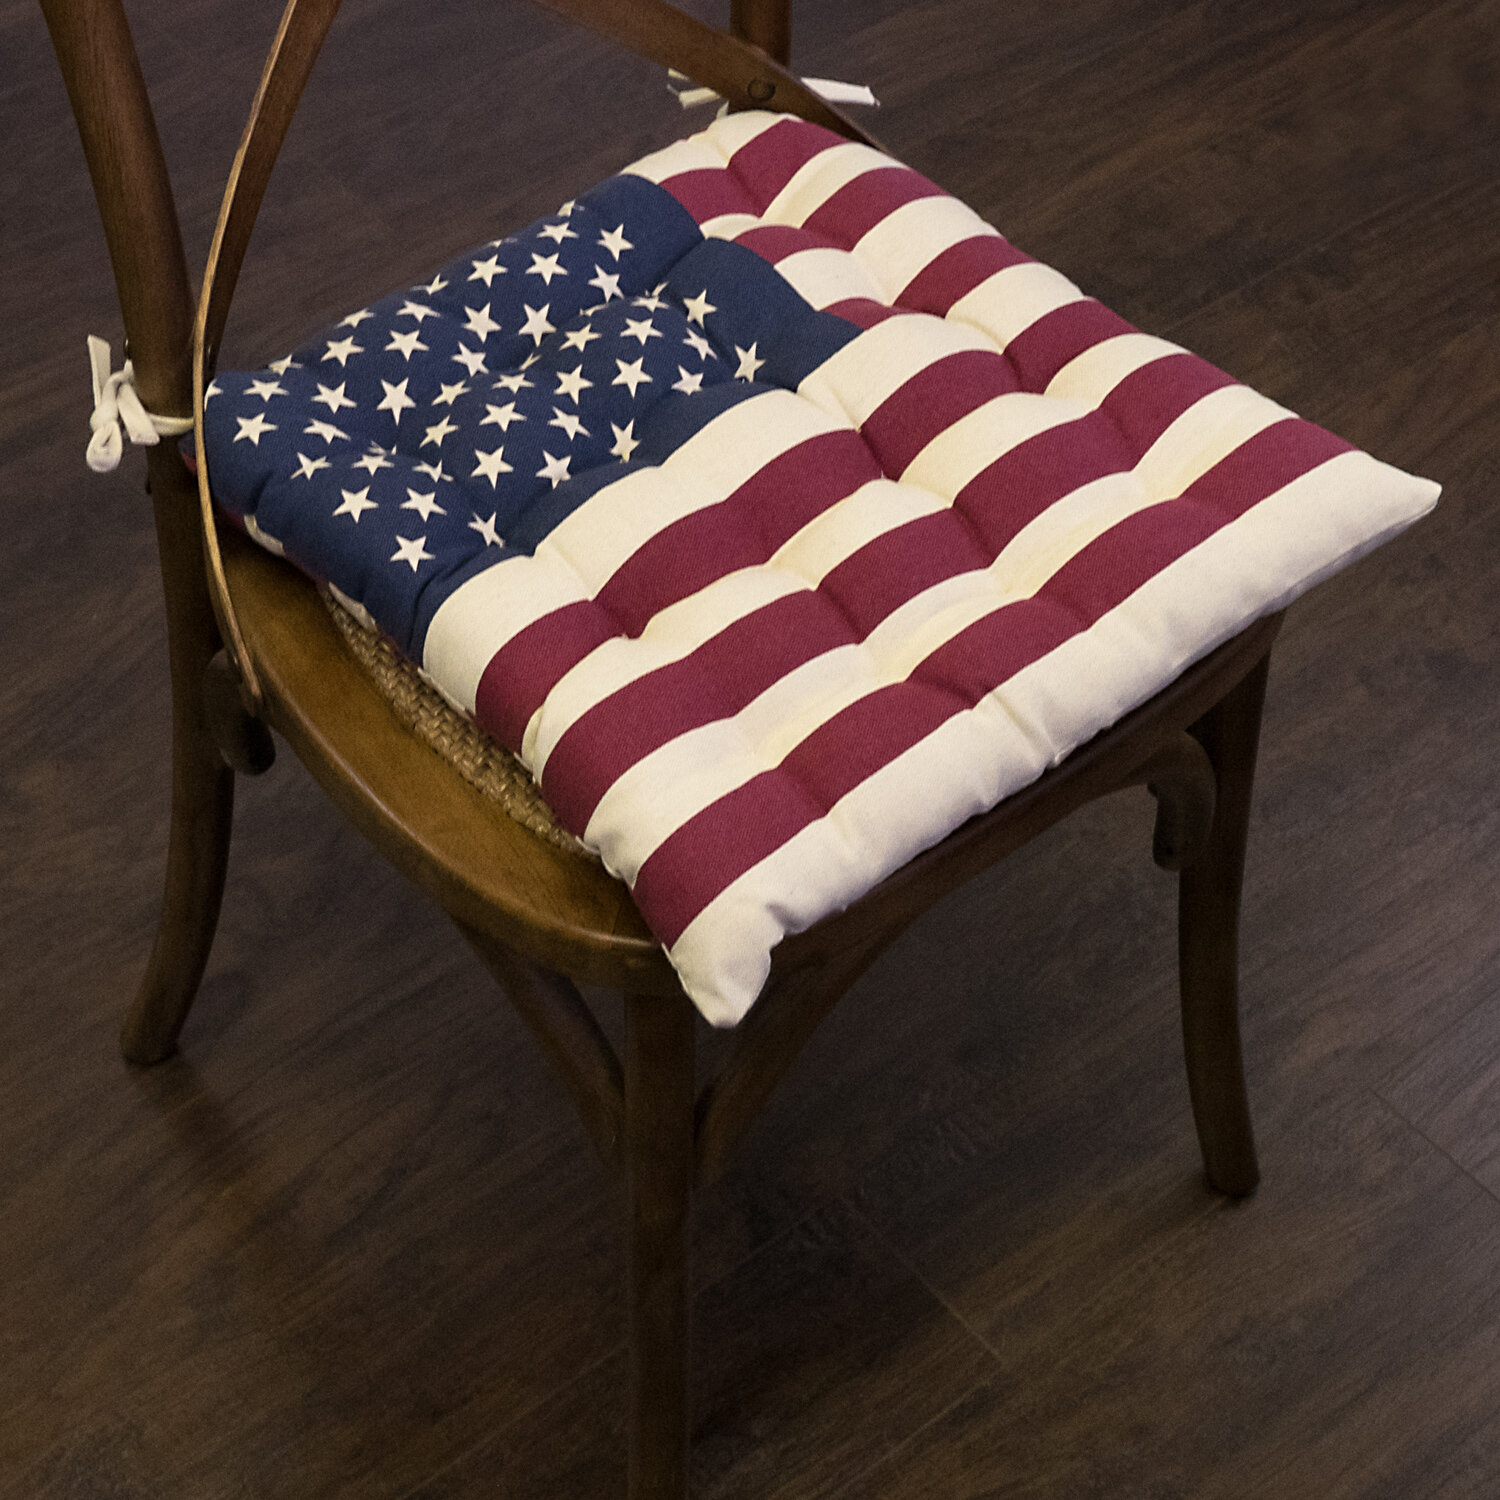 August Grove Tufted Cotton Cover Indoor Dining Chair Cushion Wayfair